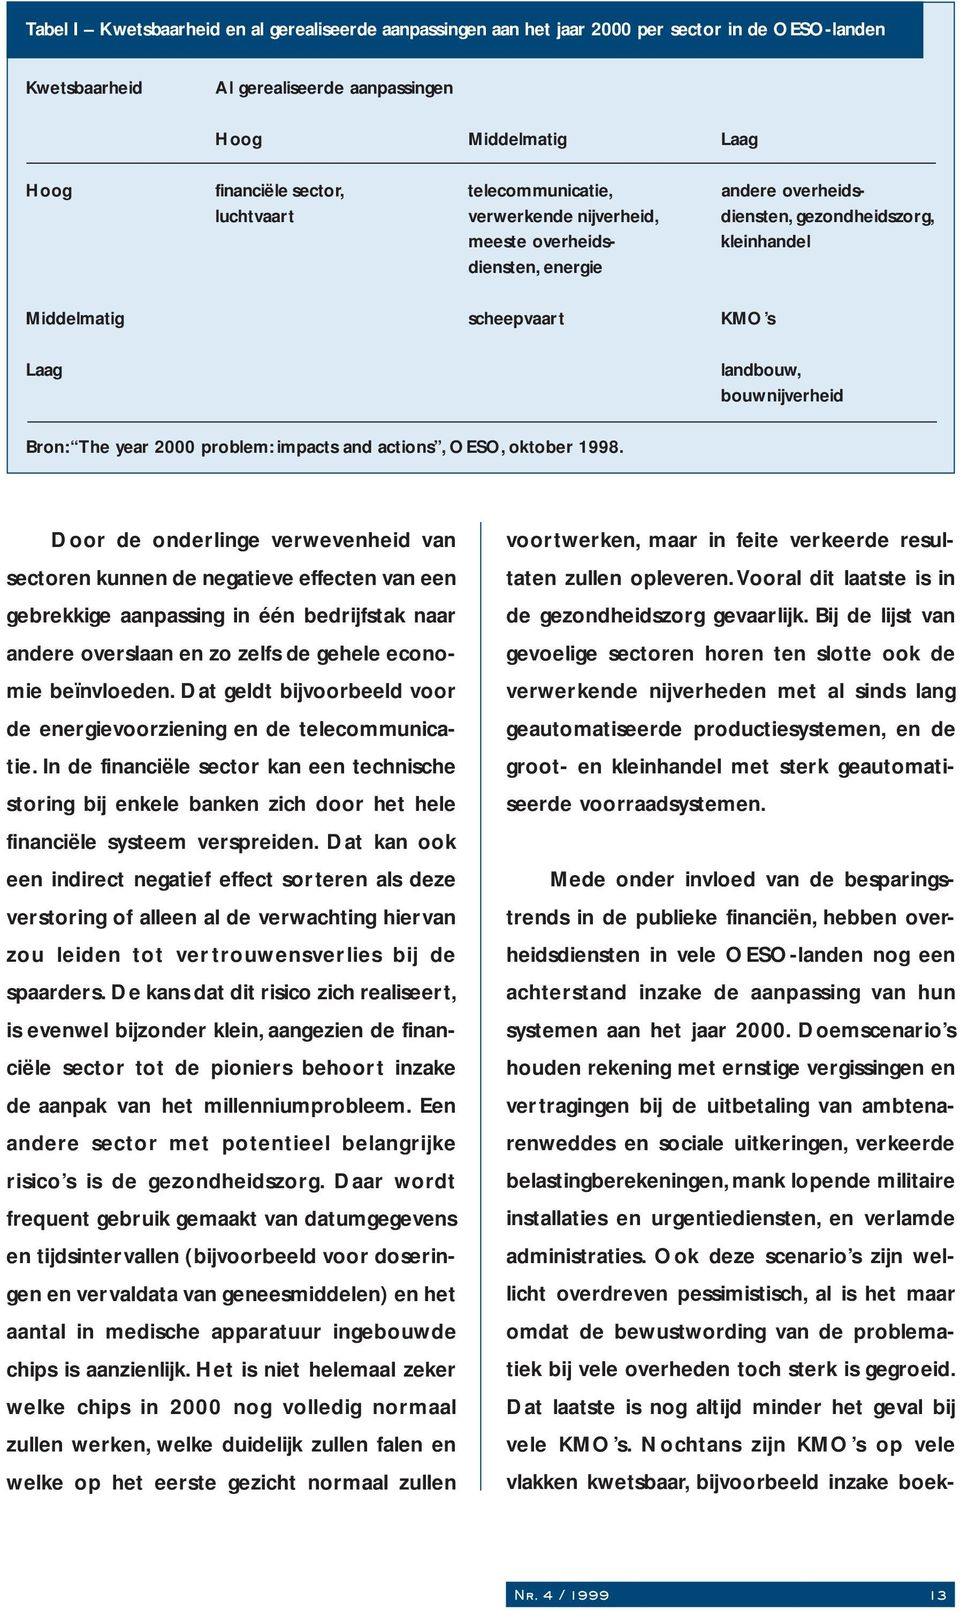 bouwnijverheid Bron: The year 2000 problem: impacts and actions, OESO, oktober 1998.